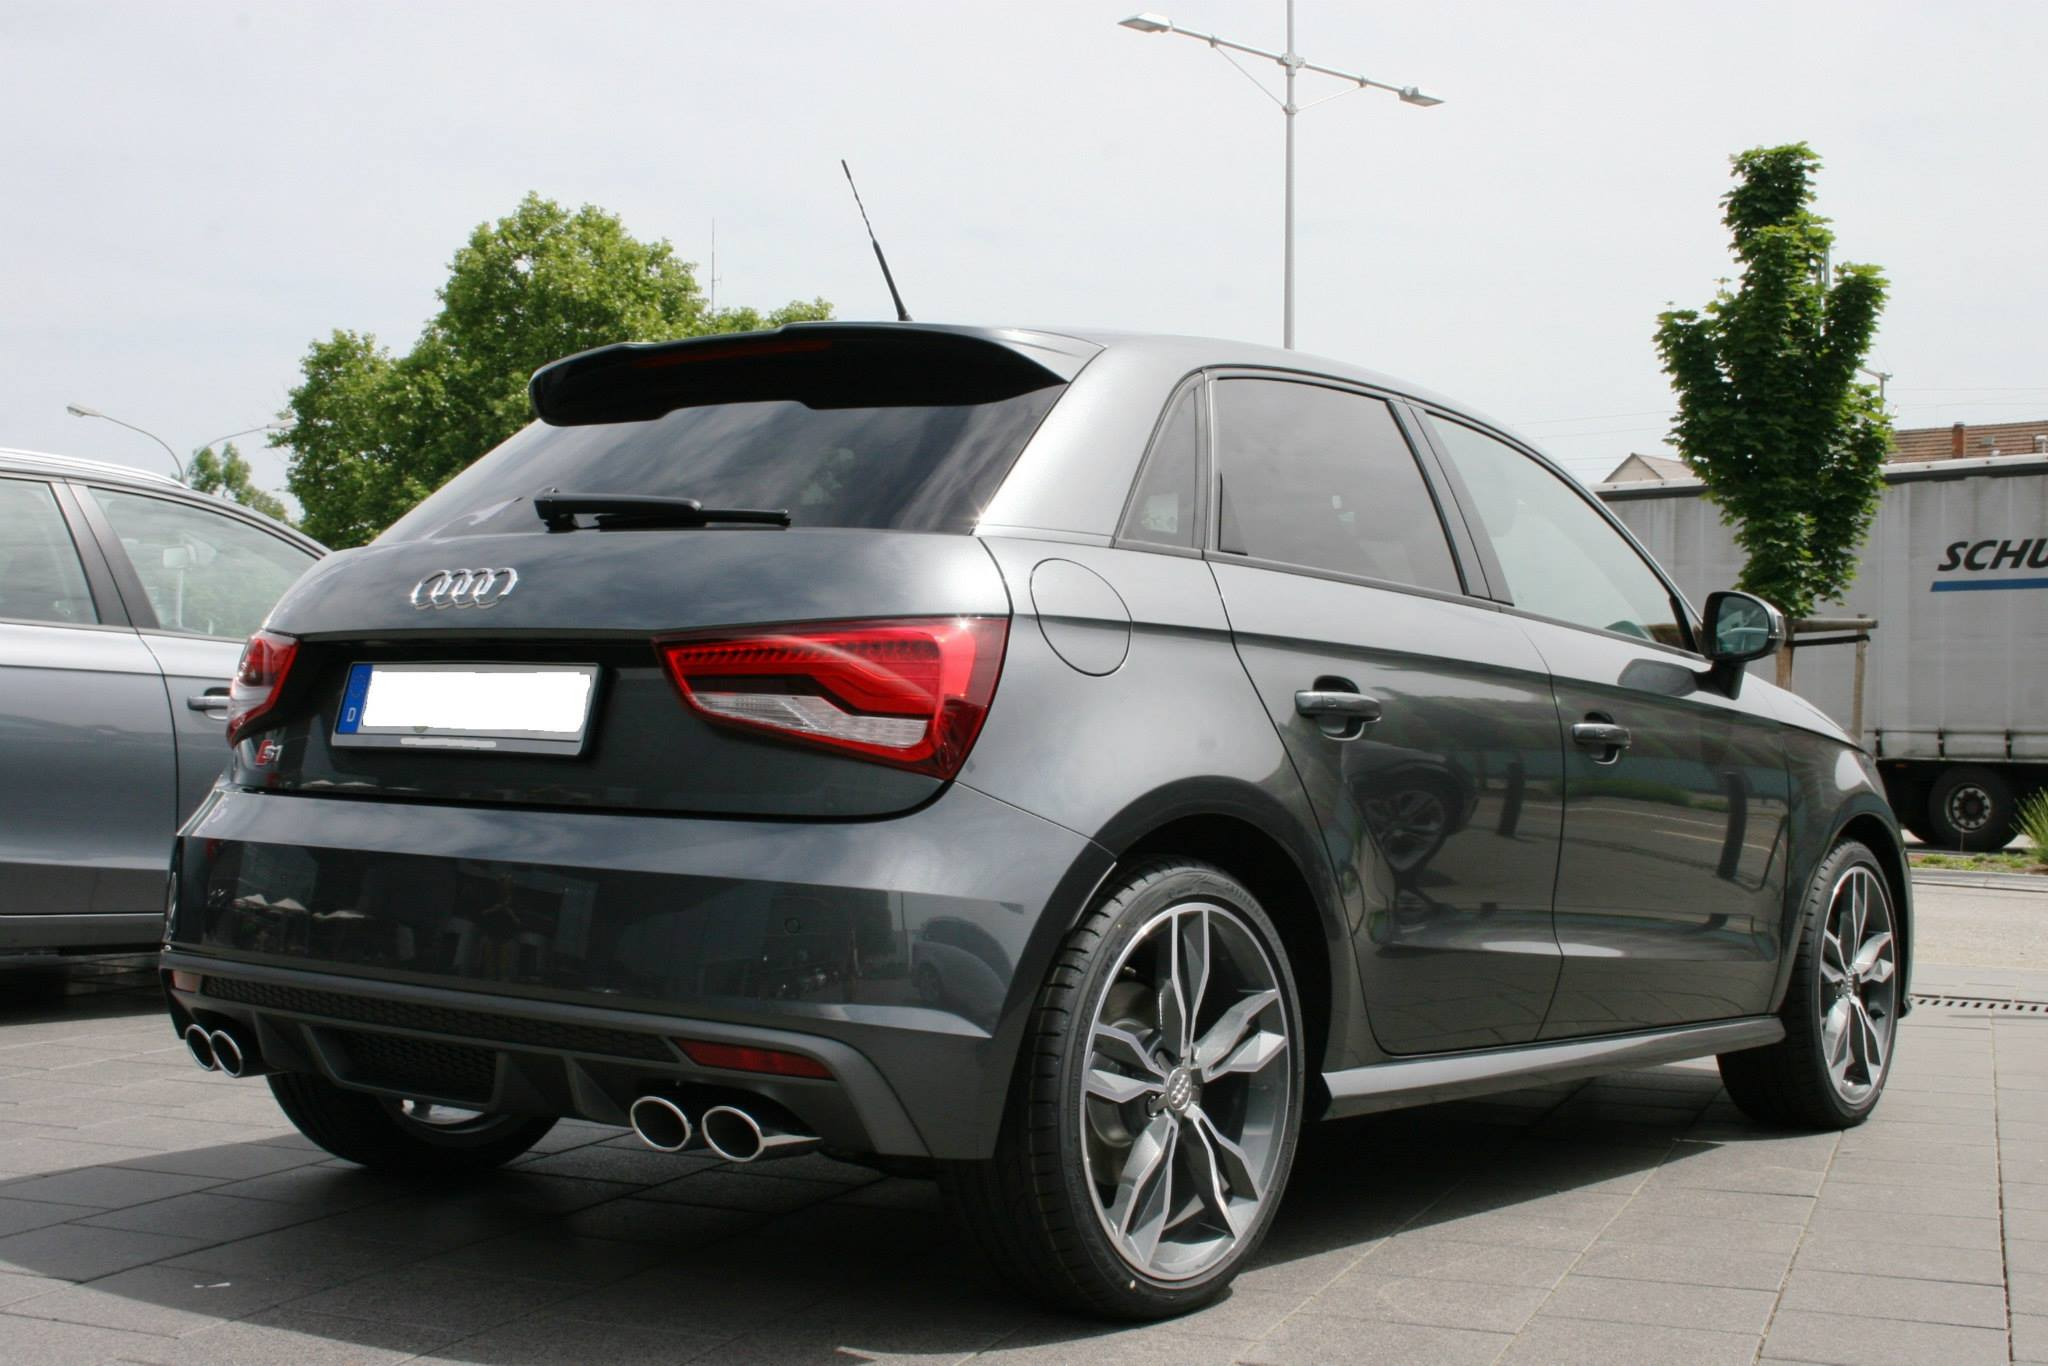 Audi S1: 4-Meter Pocket Rocket First Impressions from Audi Forum in ...